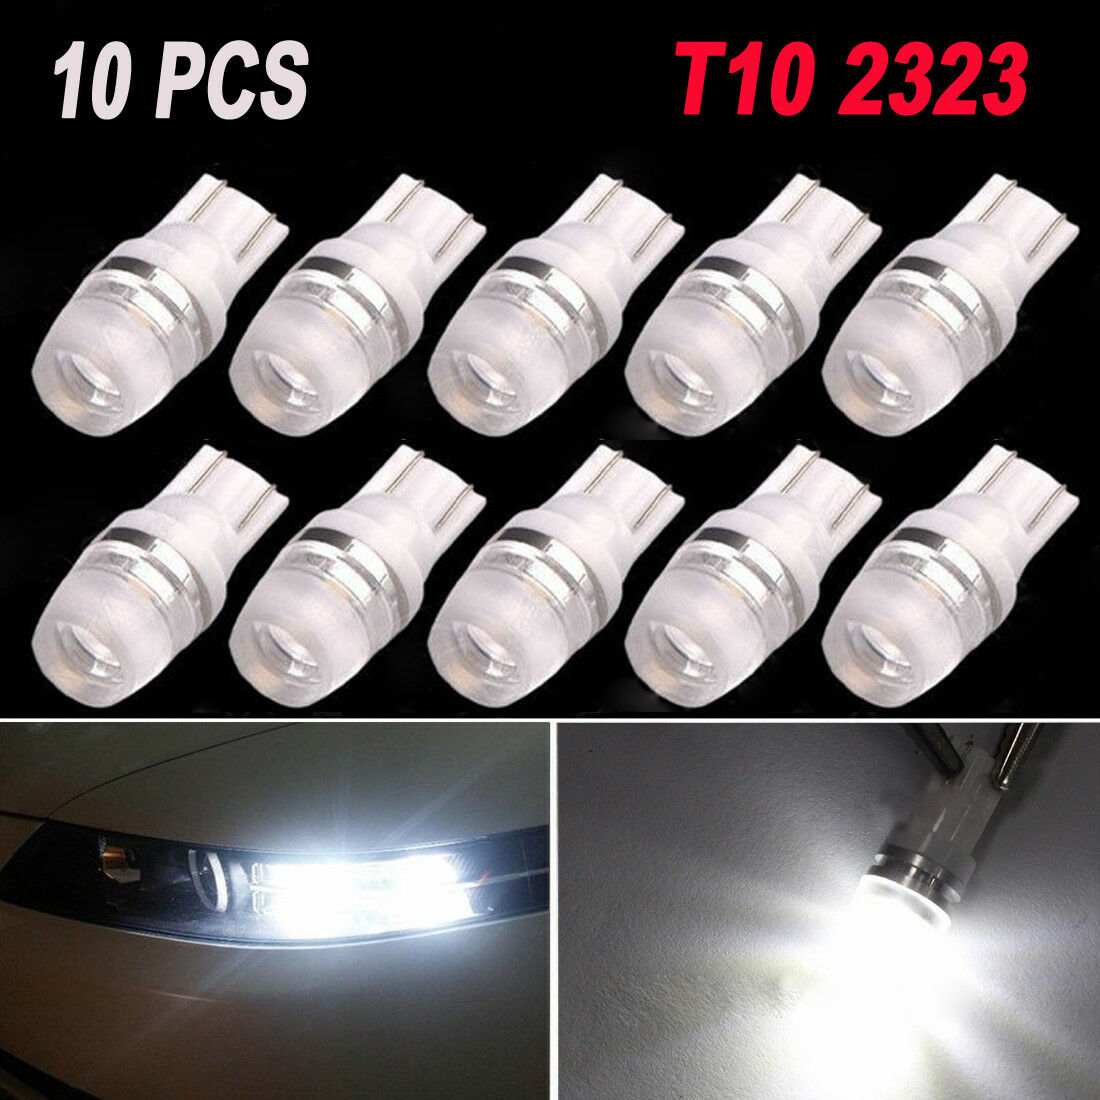 10 PCS 12V T10 168 194 W5W Car High Power White 20 SMD LED Wedge Light Bulb Lamp